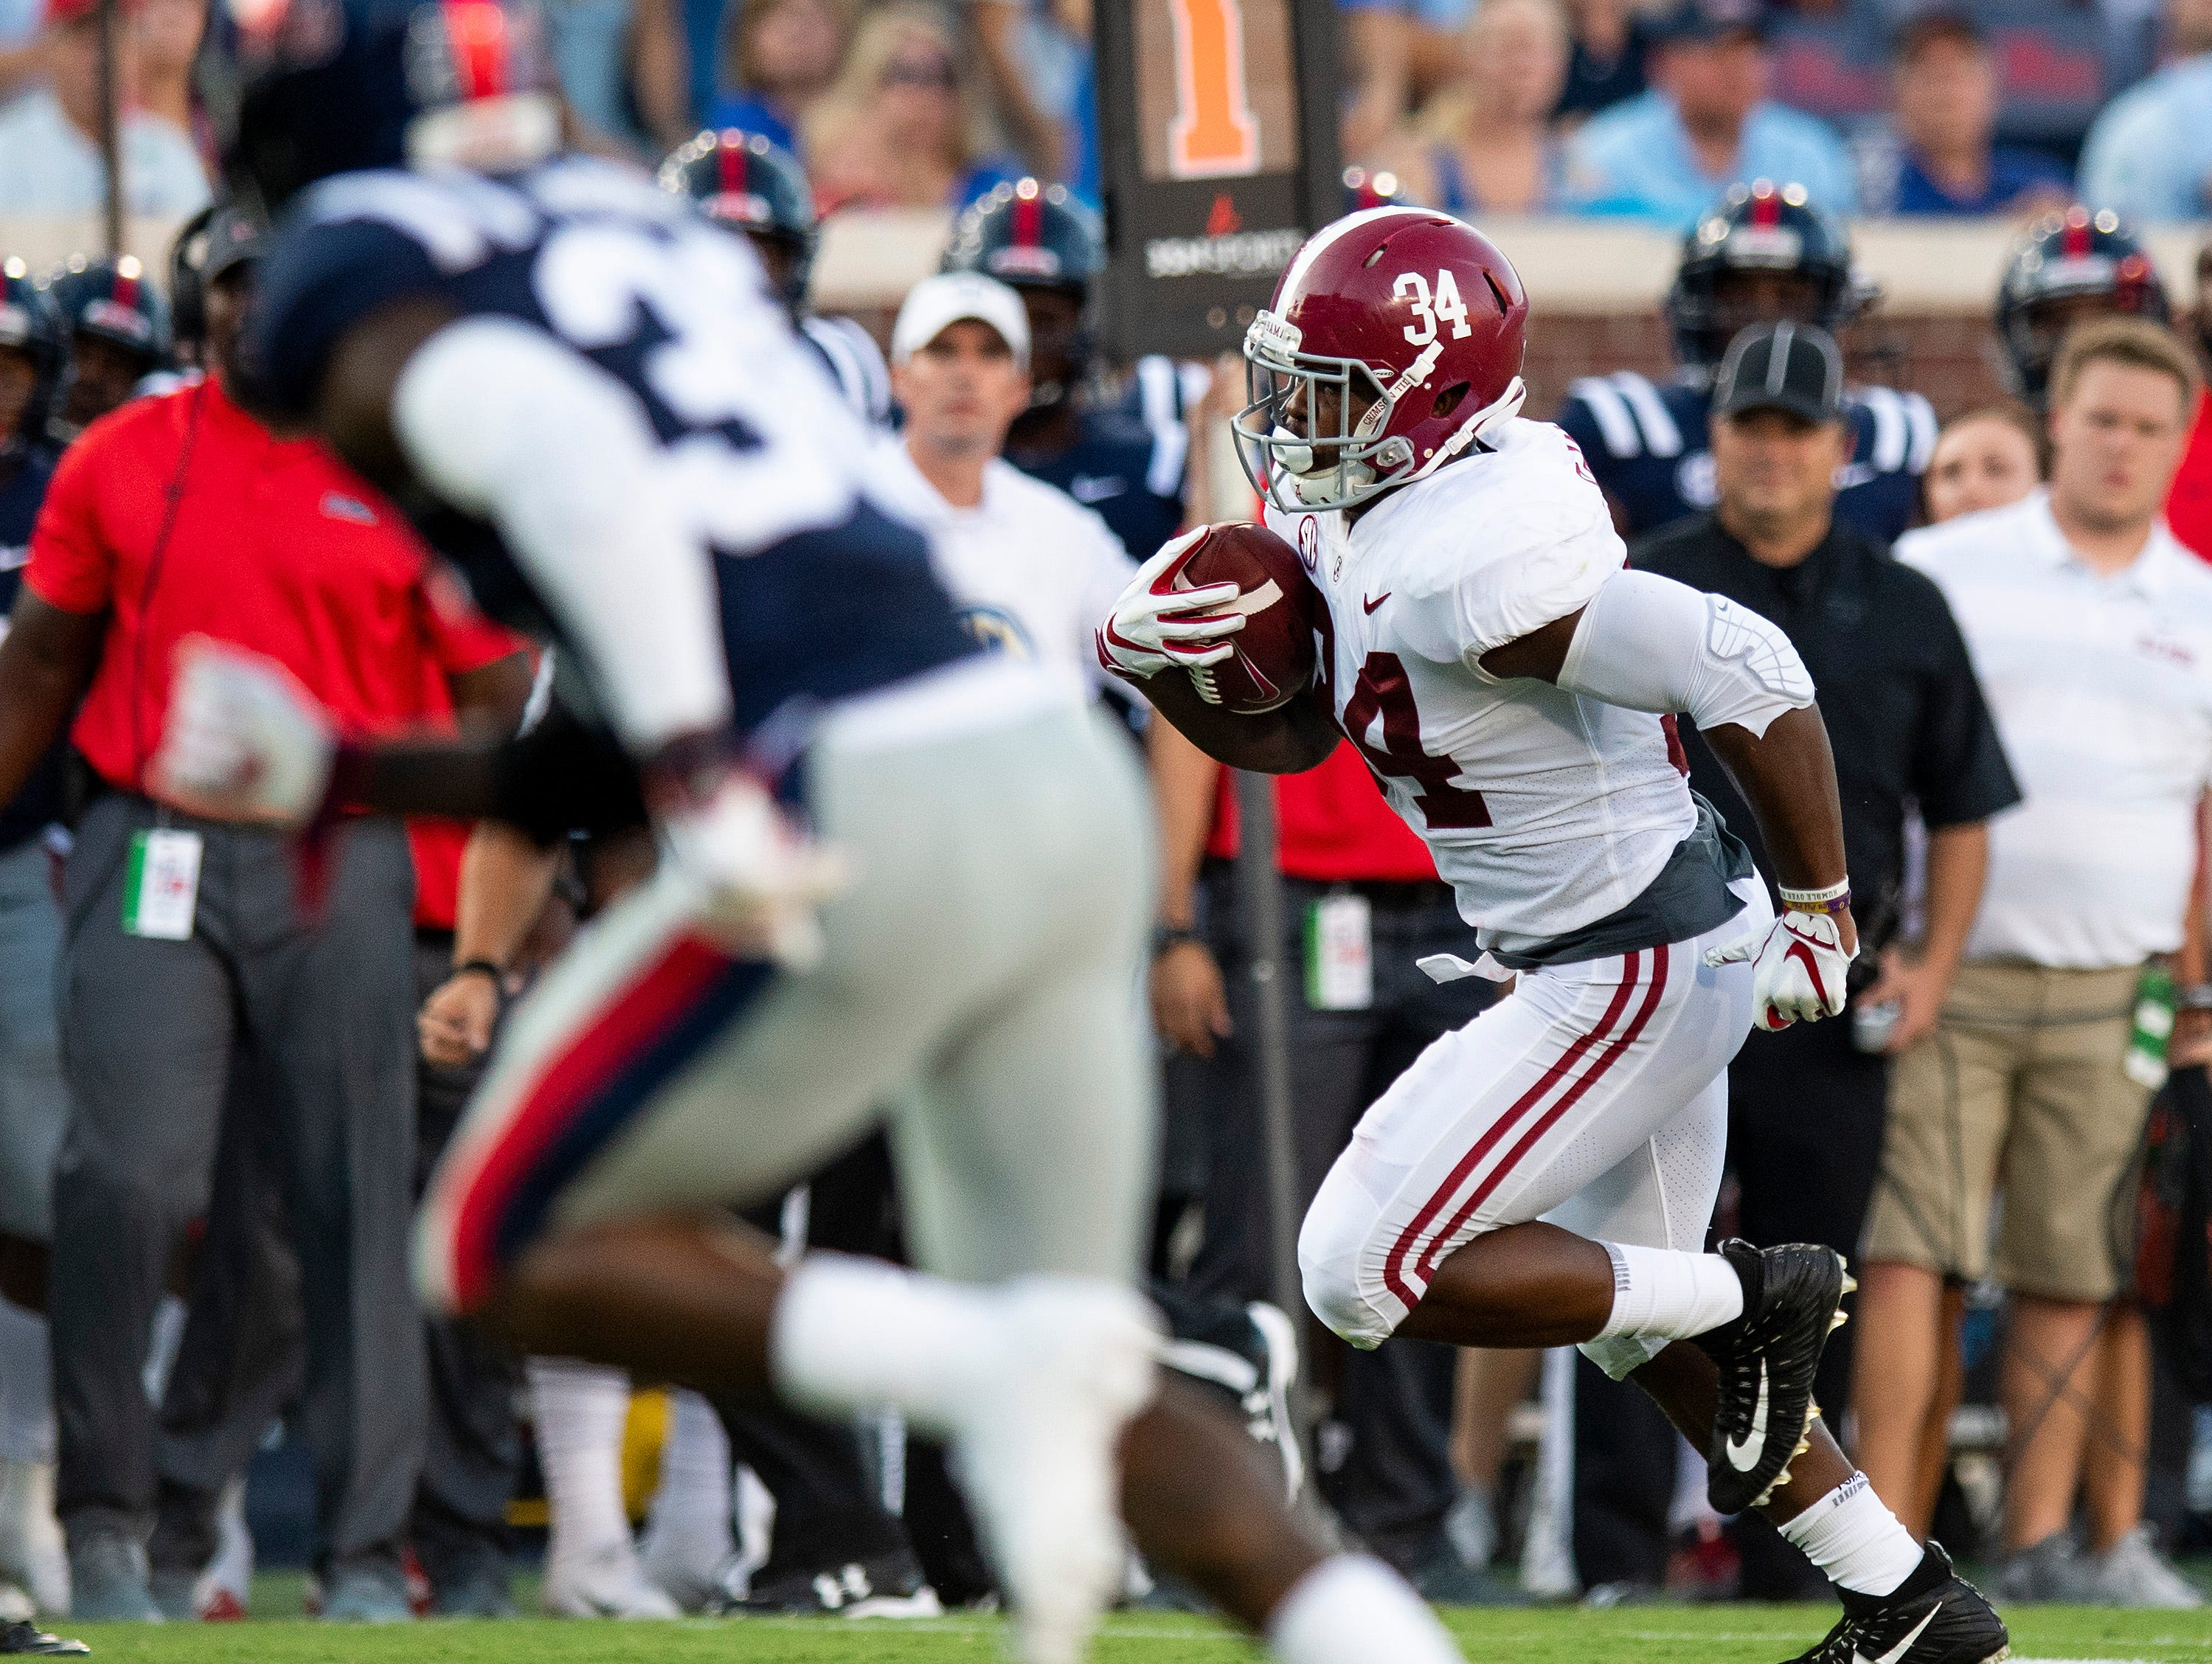 Alabama running back Damien Harris (34) carriers for a touchdown against Ole Miss In first half action in Oxford, Ms., on Saturday September 15, 2018.